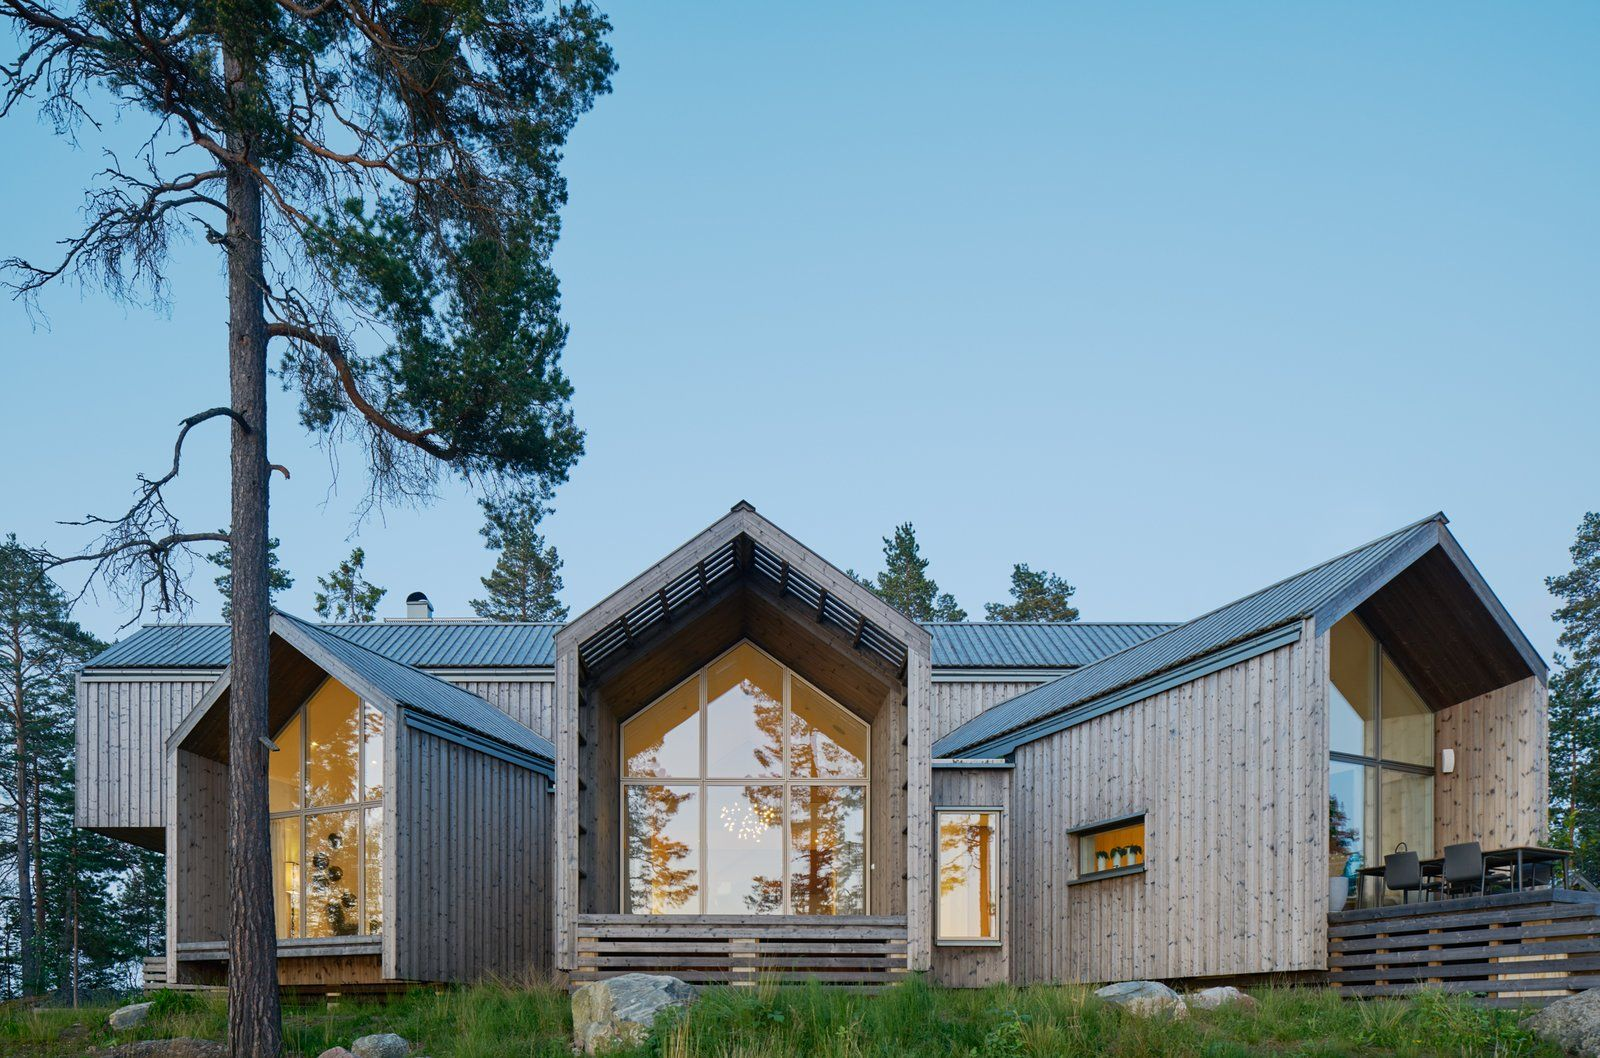 A Swedish Family S Dreamy Villa Fans Out For Lakeside Views Scandinavian Architecture Rural House Exterior Design